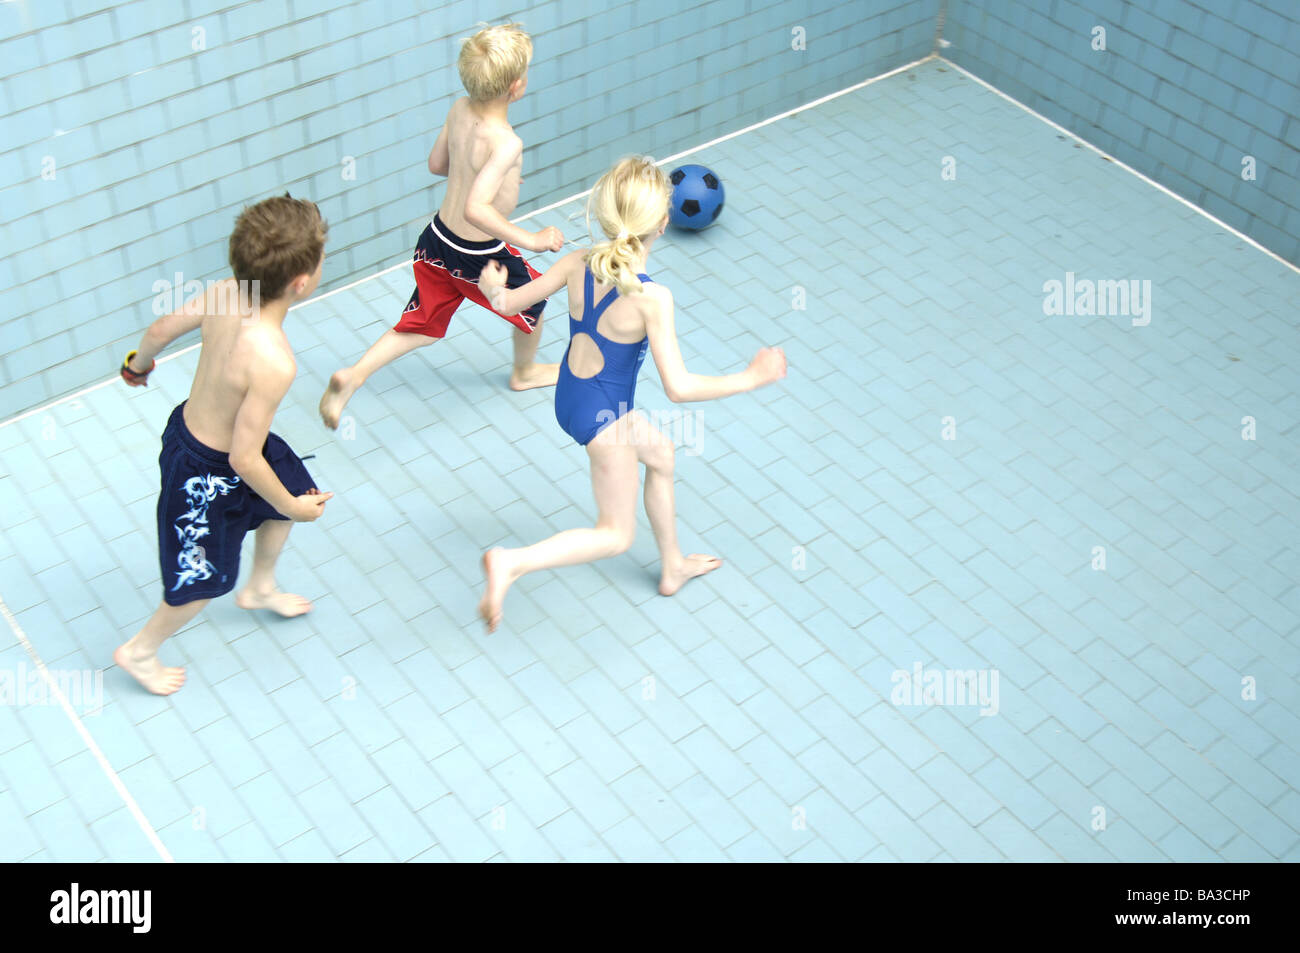 Pool empty children soccer games from above series people girls boys bath-clothing pools basin-ground tiles ball - Stock Image